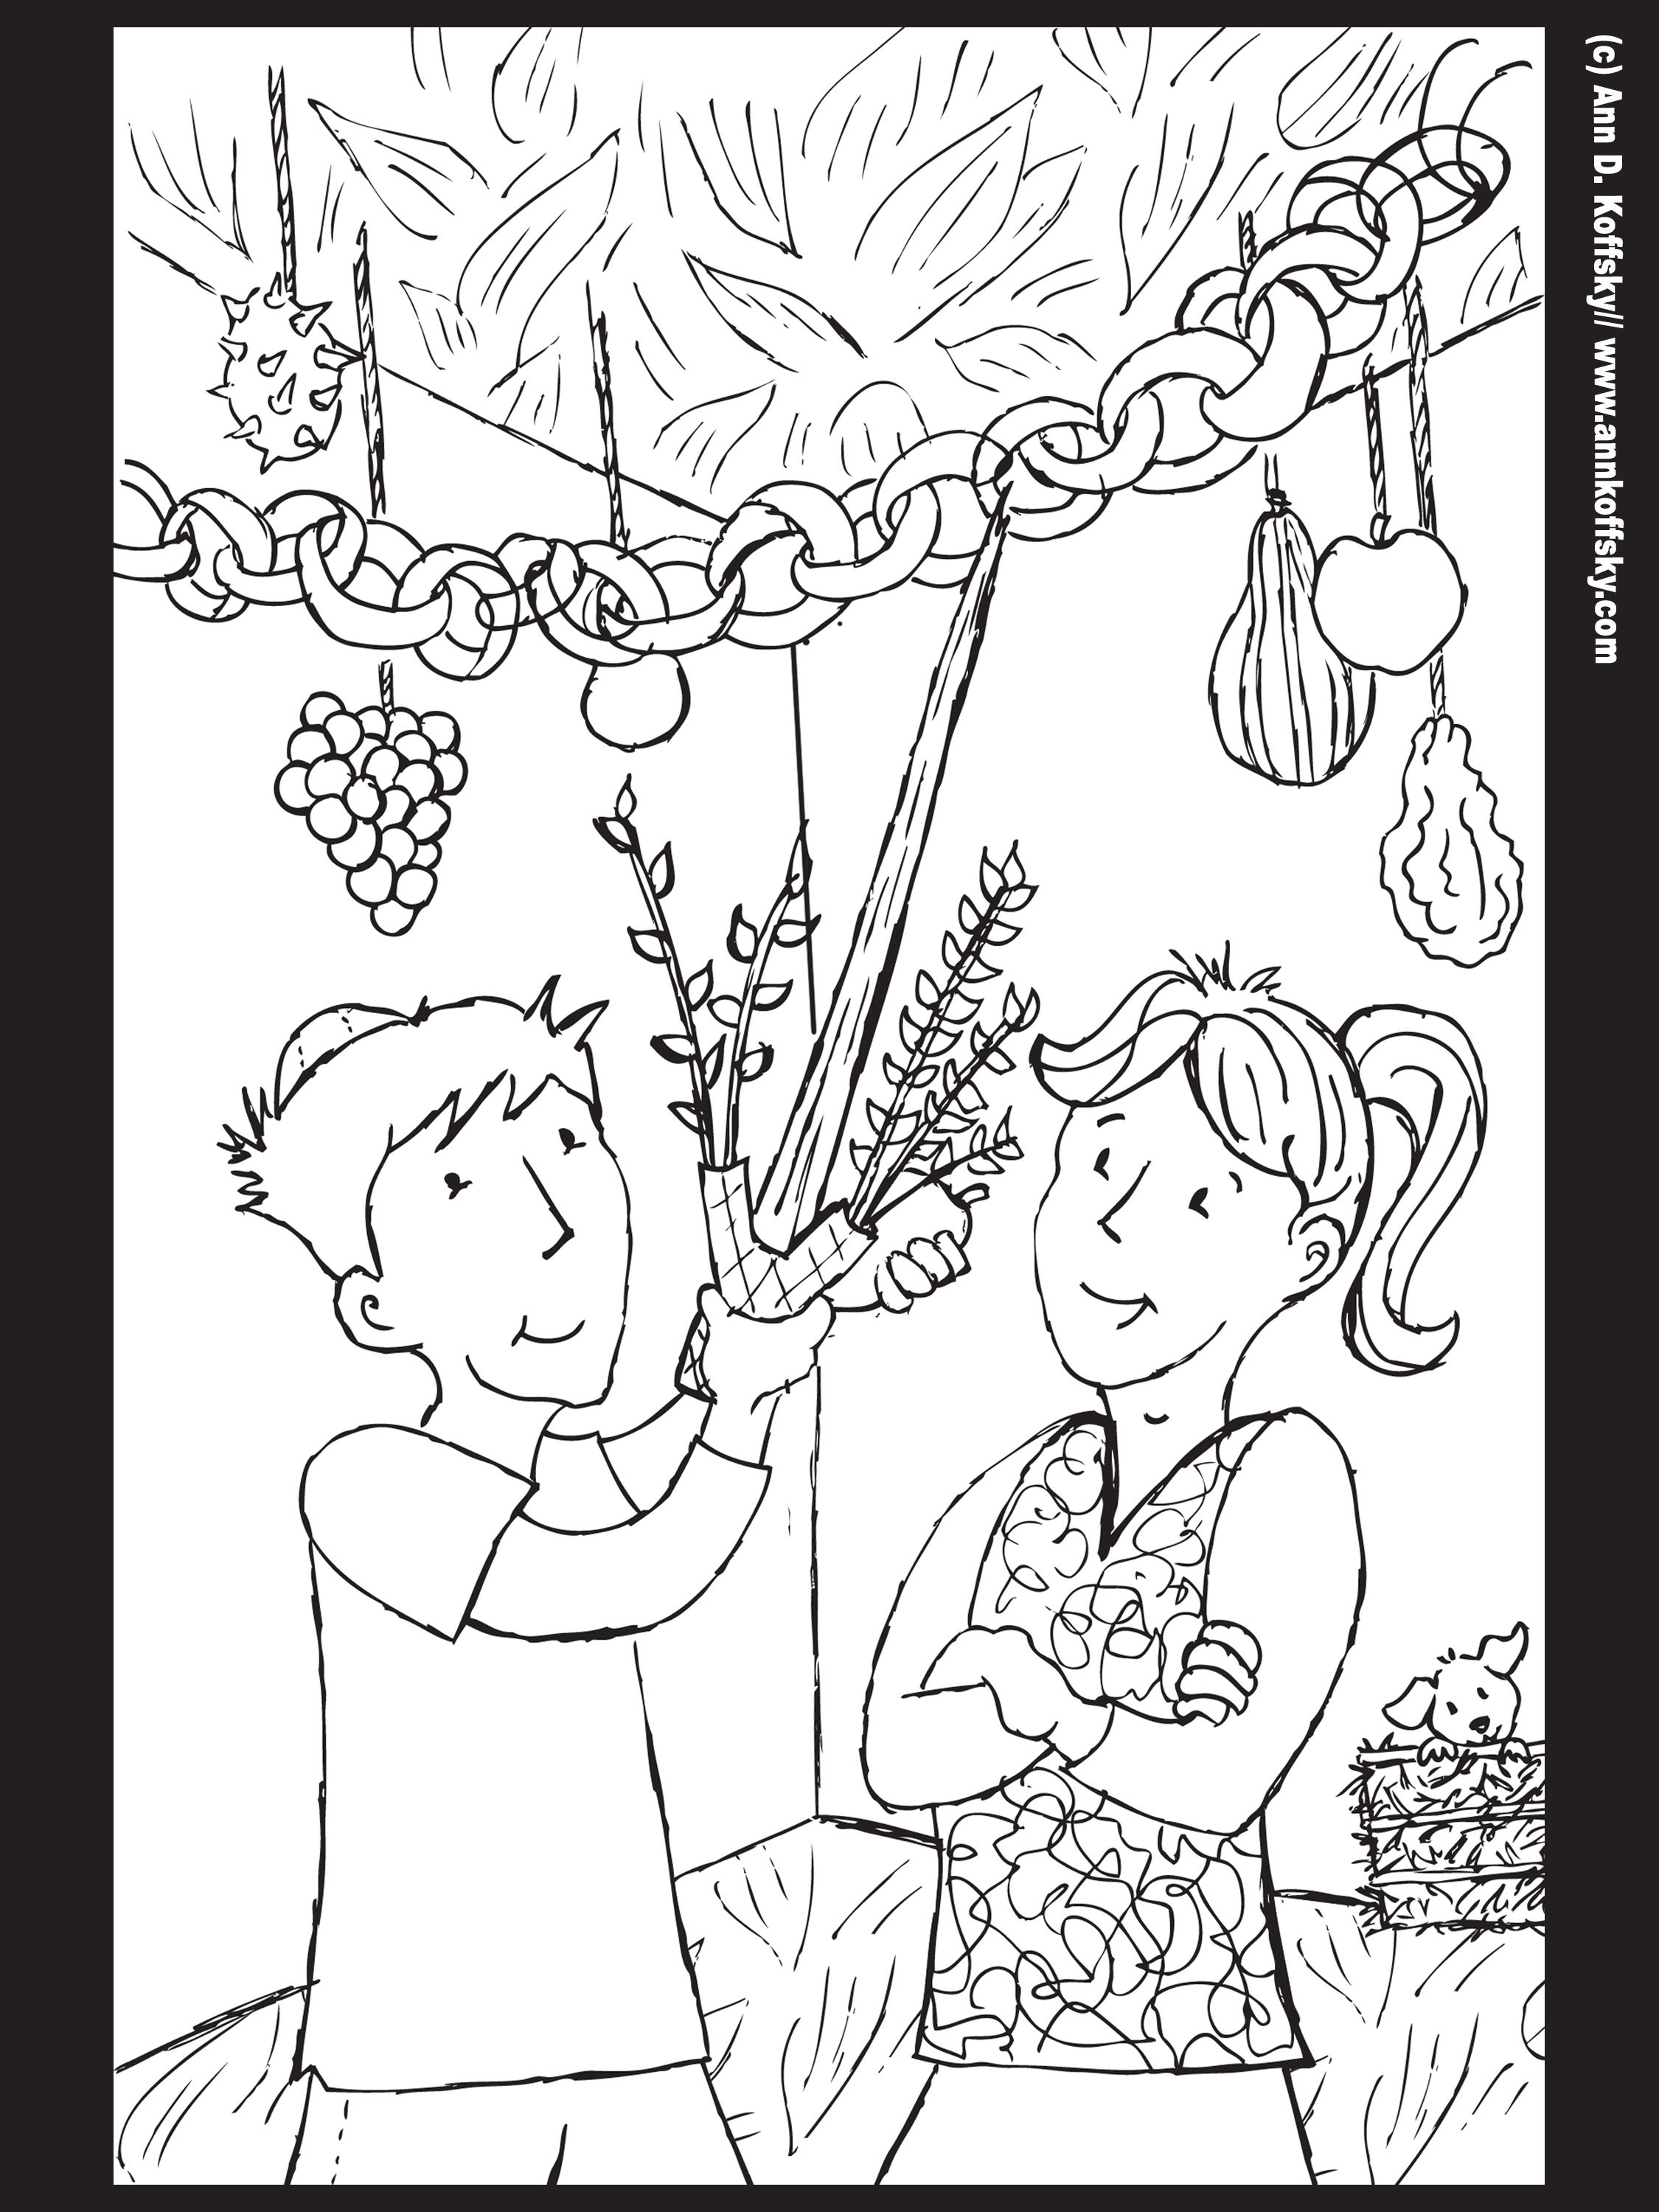 Sukkot coloring page Celebrating the Feasts Pinterest